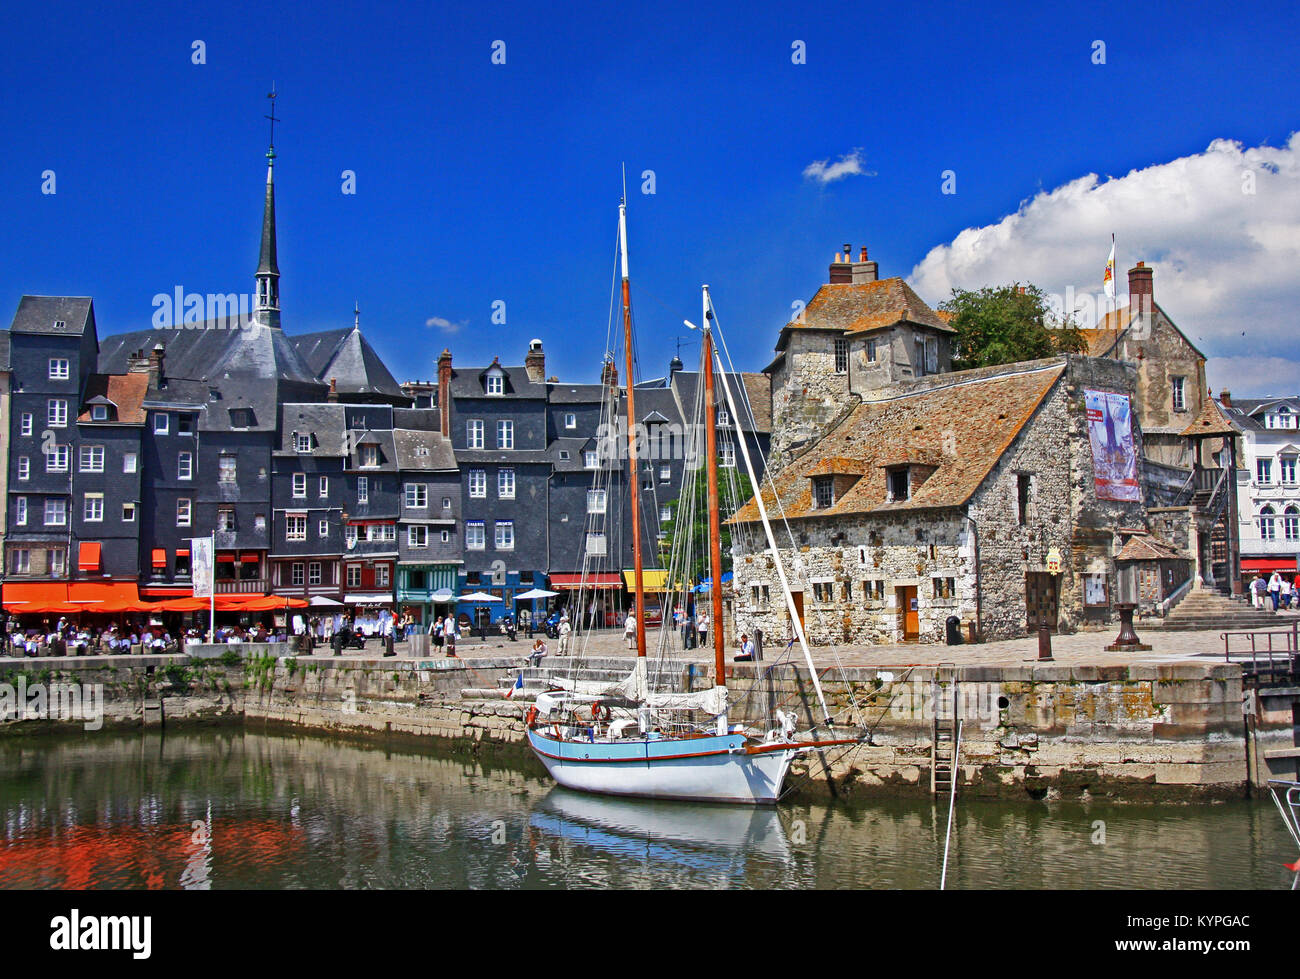 Sailing boat in the harbour and waterfront at Honfleur Normandy in Northern France - Stock Image